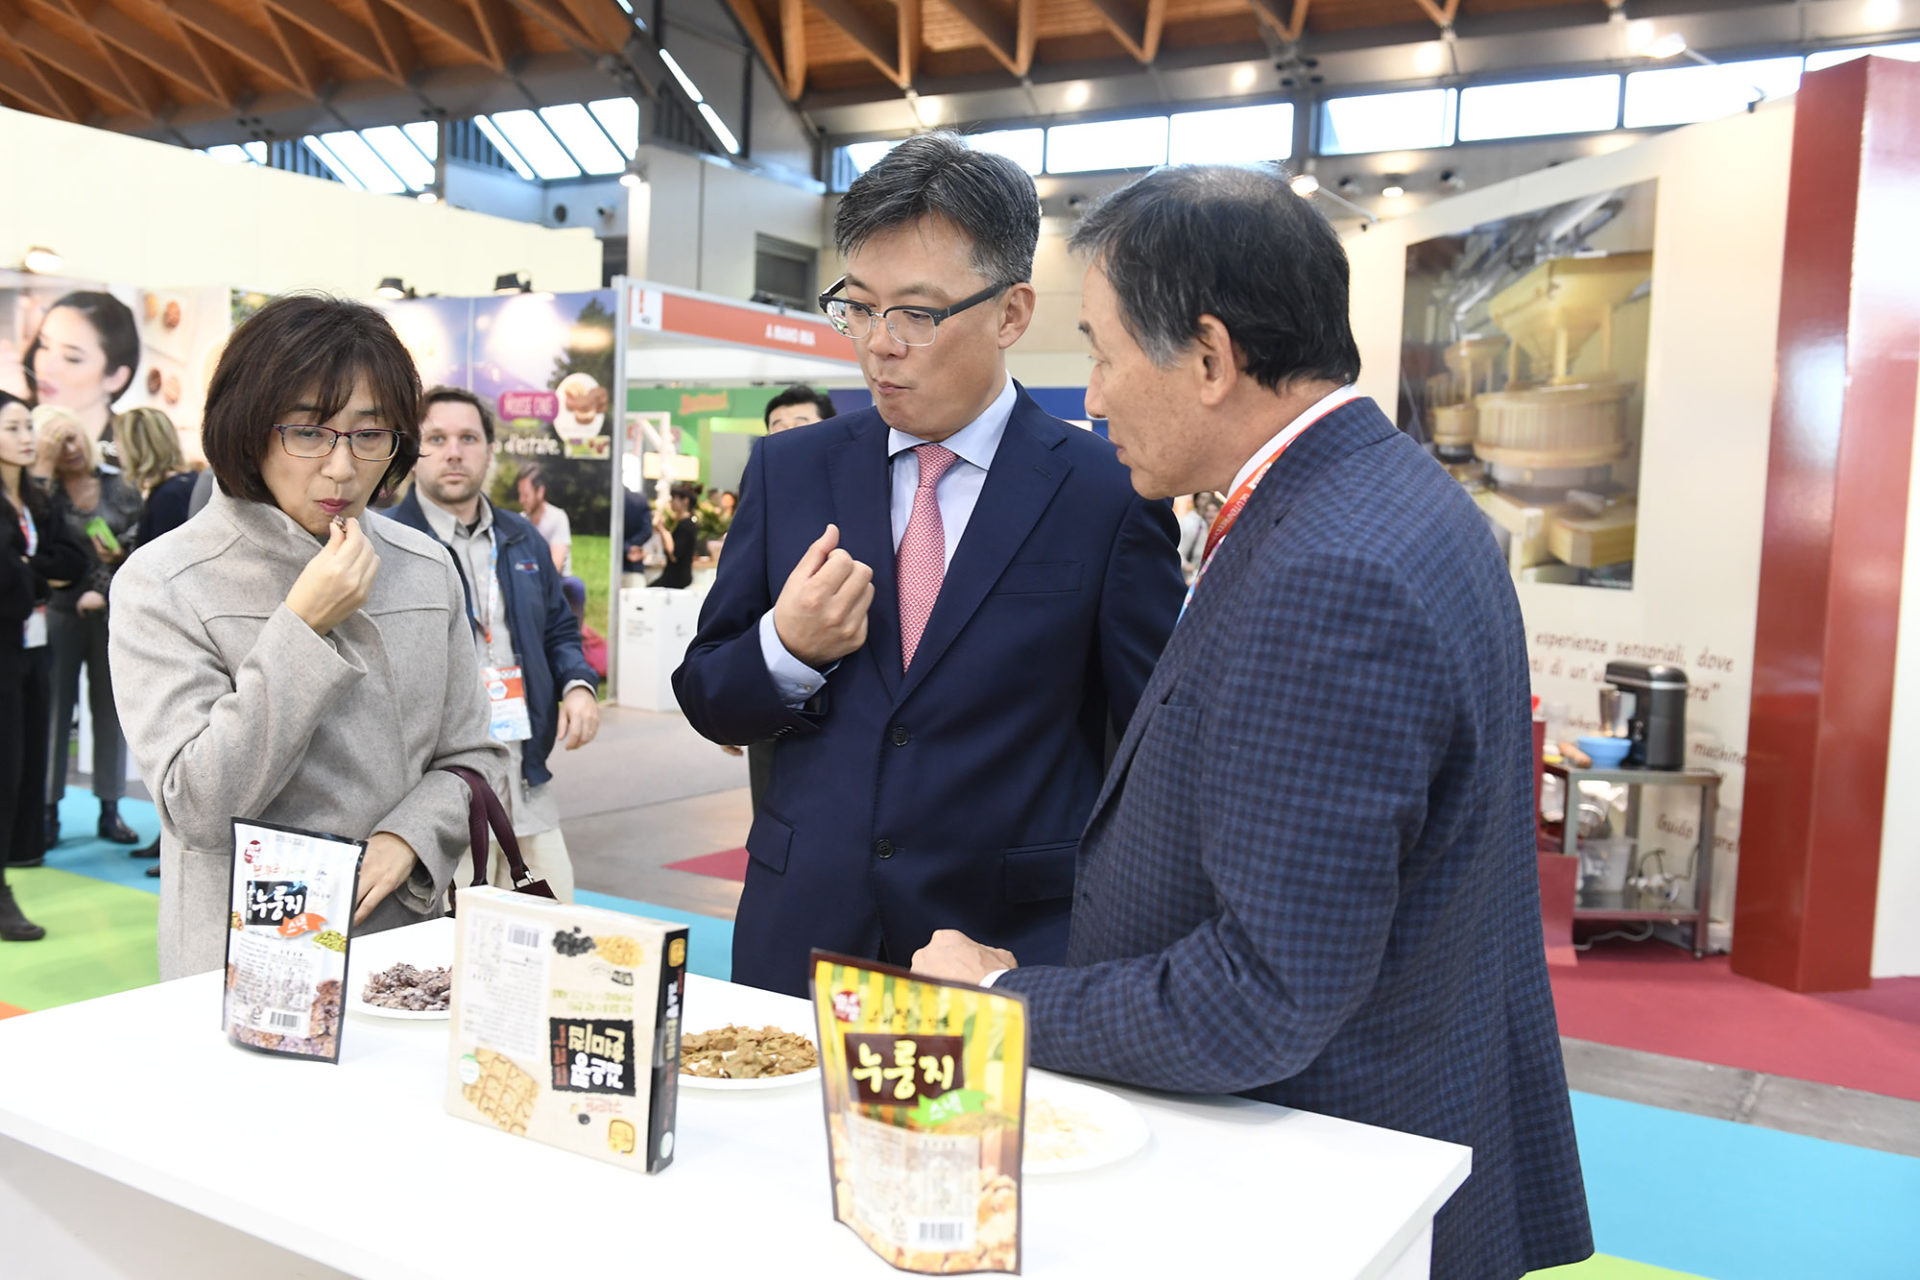 foodnova-2020-dietary-food-beverage-exhibition-double-for-market-italy